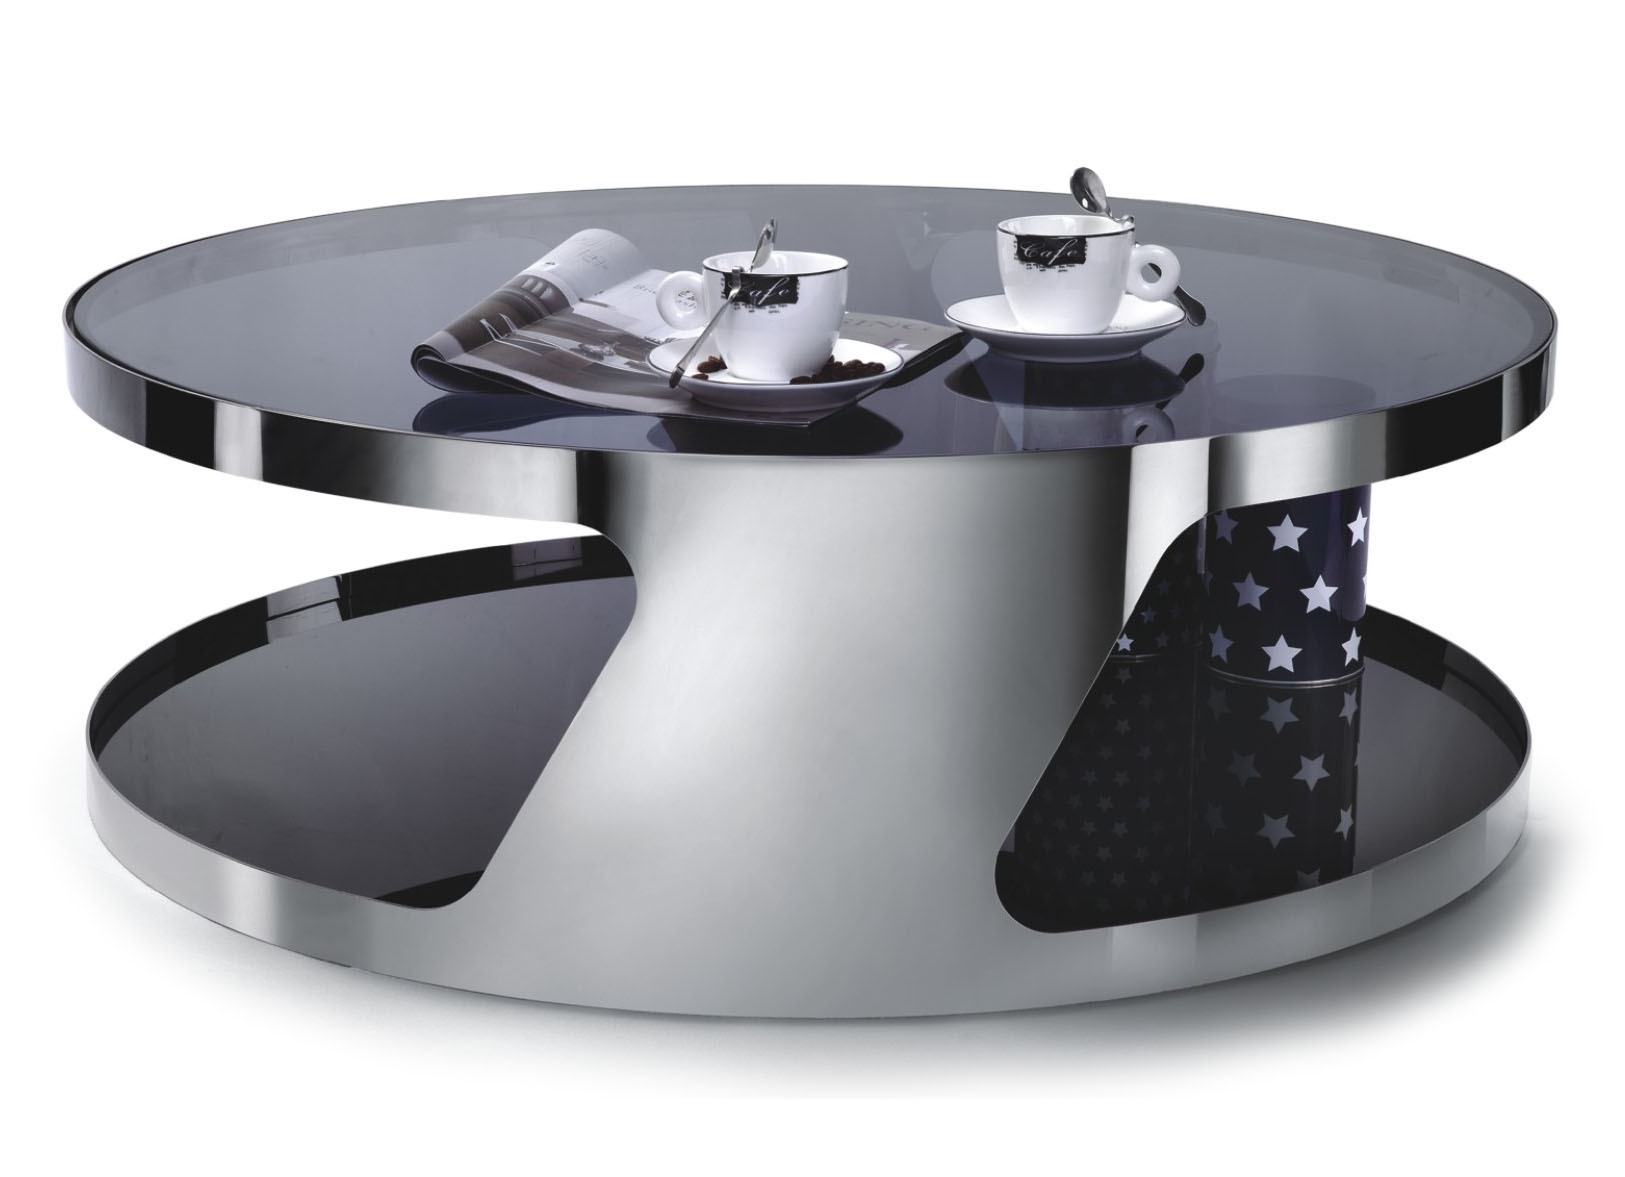 Designer Large Round Coffee Table Glass Top Stainless Steel 126 EBay